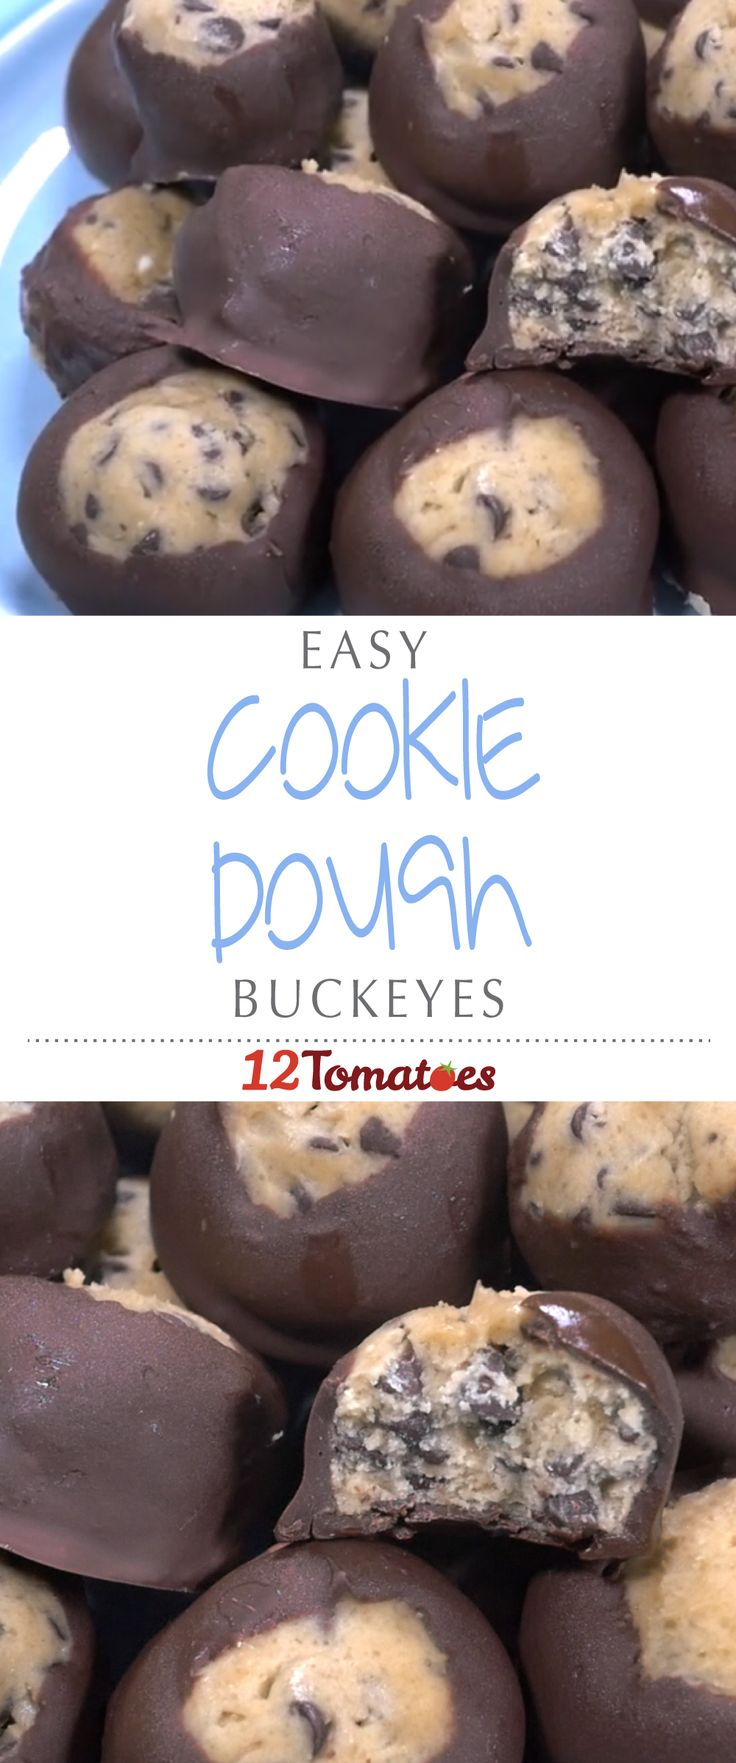 Cookie Dough Buckeyes | The dough is a cinch to make and then all you have to do is dip each adorable buckeye into some melted chocolate and let them all cool.